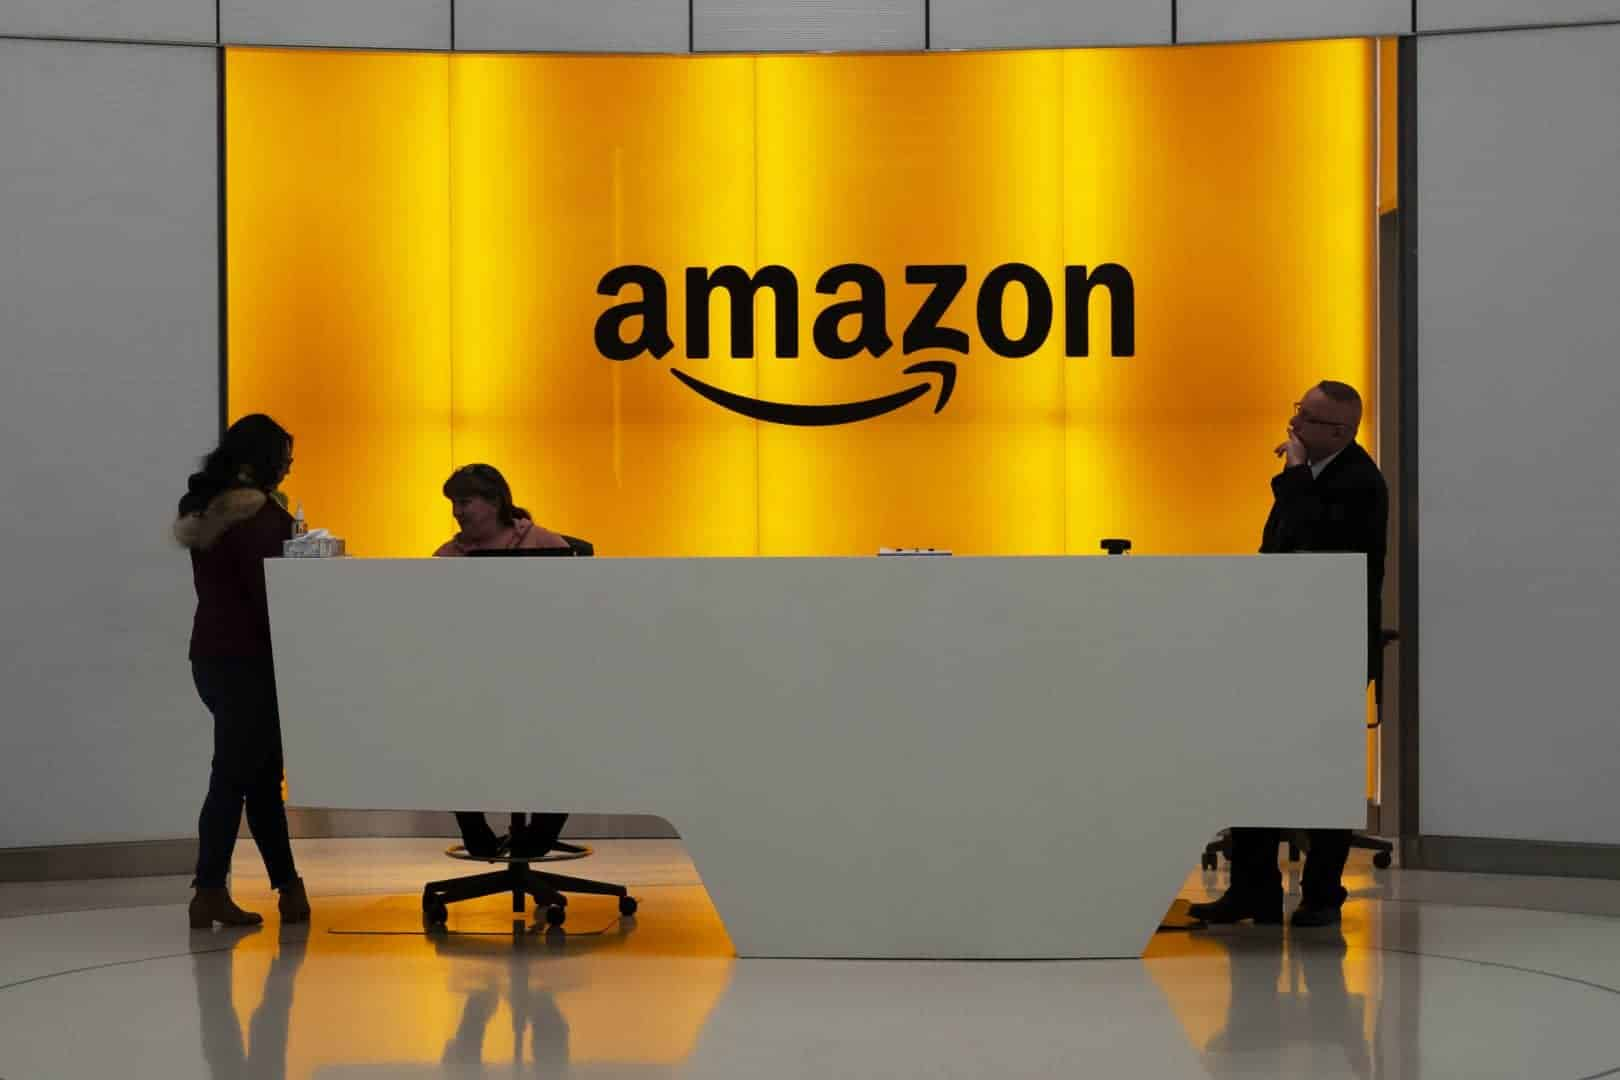 Amazon suspends all non-essential shipments over COVID-19 crisis